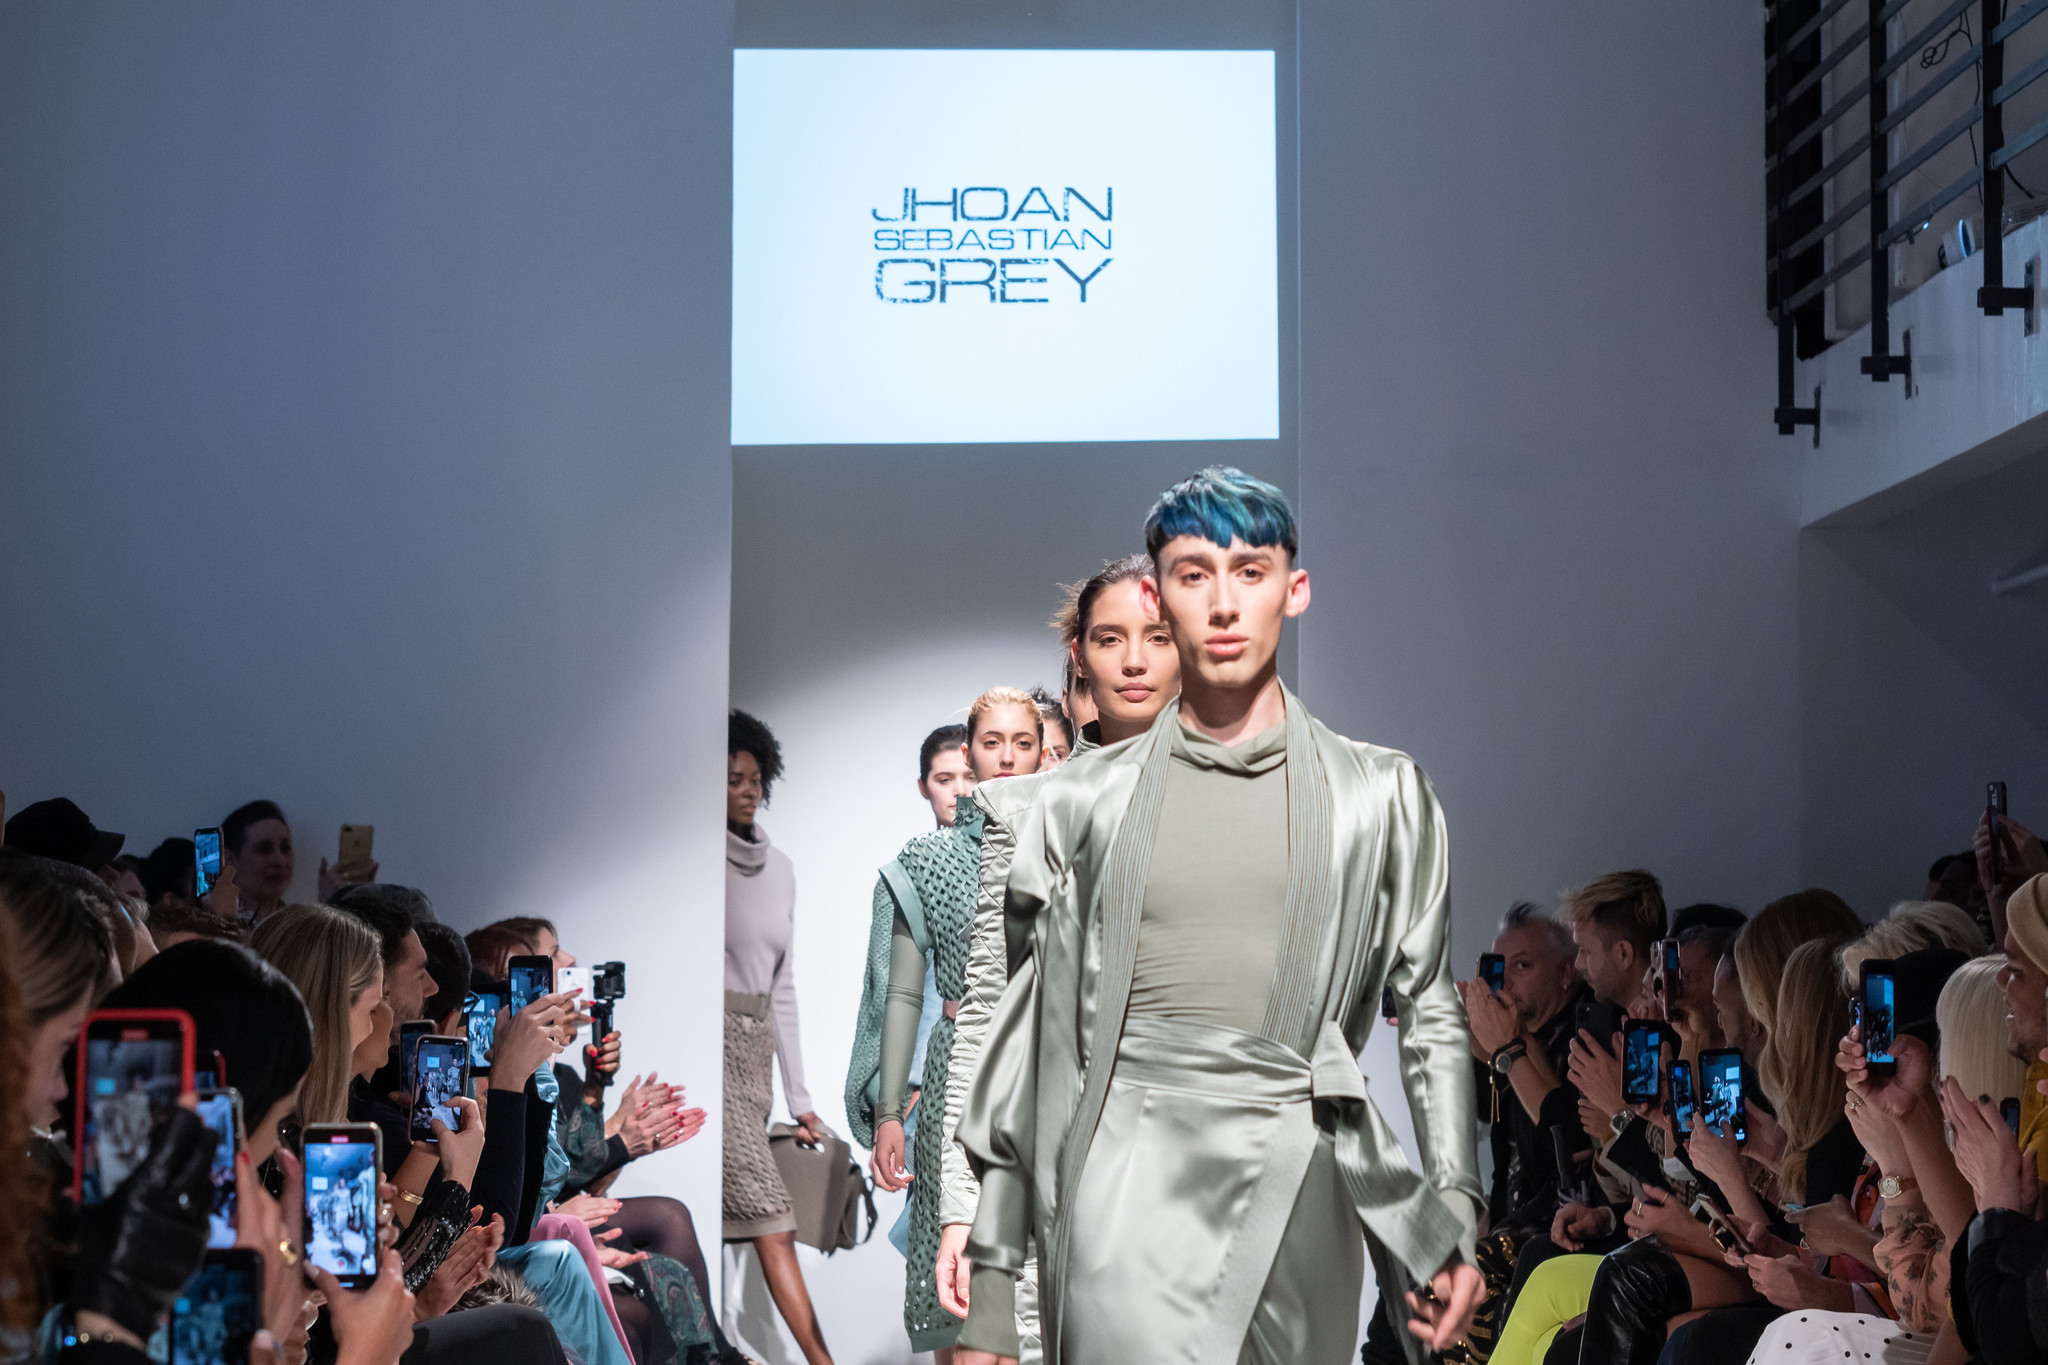 Project Runway Winner Sebastian Grey S Fashion Show In New York South Florida Sun Sentinel